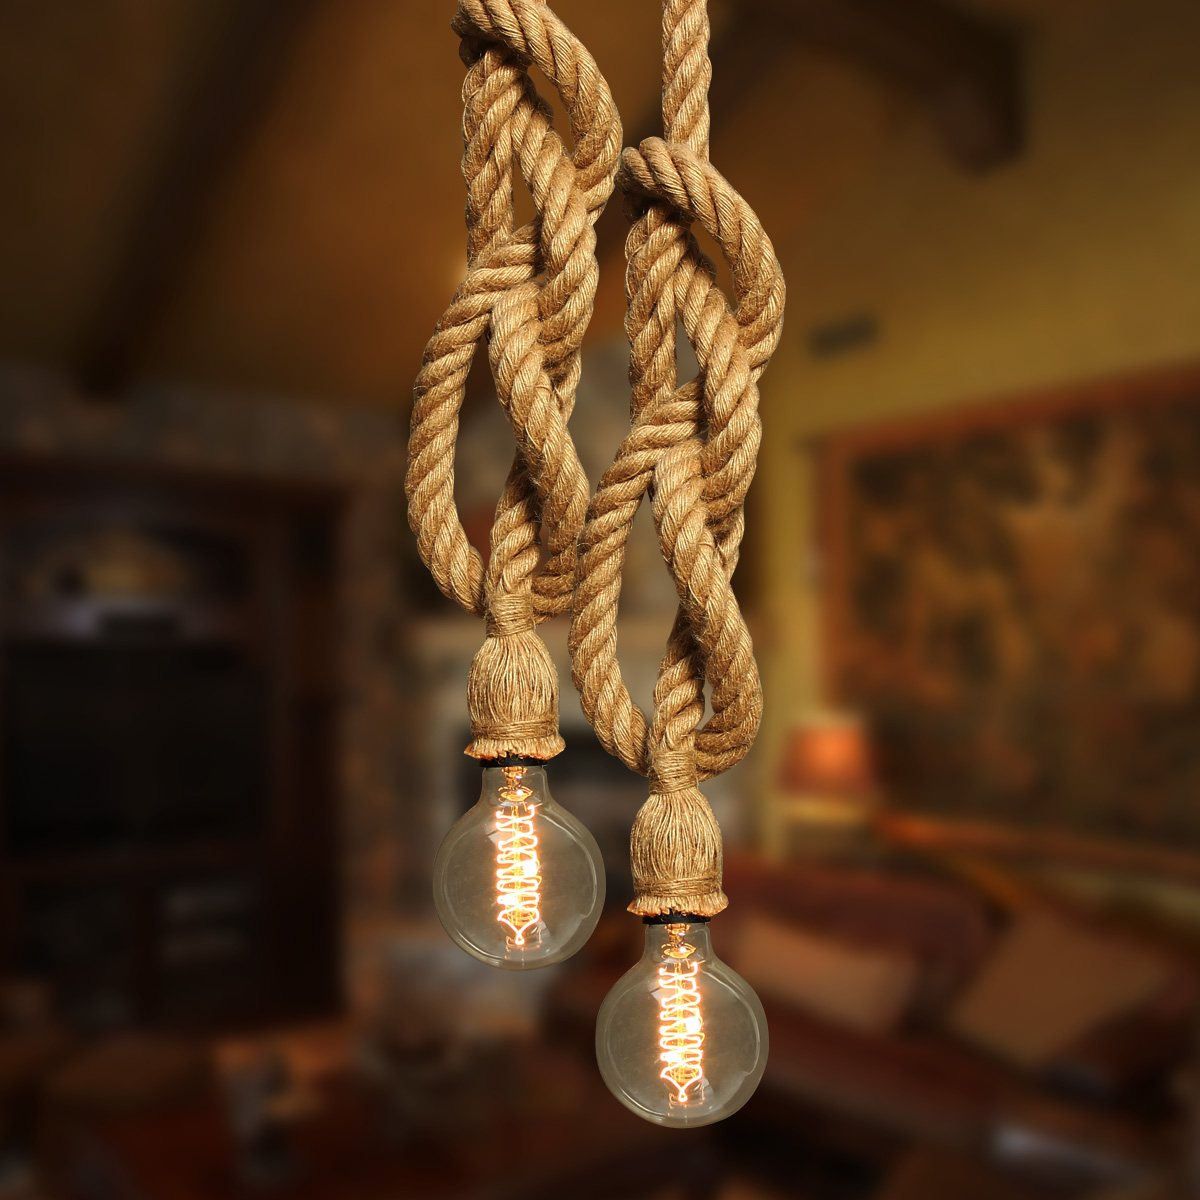 DIY 1-4M Double Heads Countryside Hemp Rope Lamp Pendant Lights Night Lighting Edison Bulb for Living Room Cafe Shop Home Decor edison inustrial loft vintage amber glass basin pendant lights lamp for cafe bar hall bedroom club dining room droplight decor